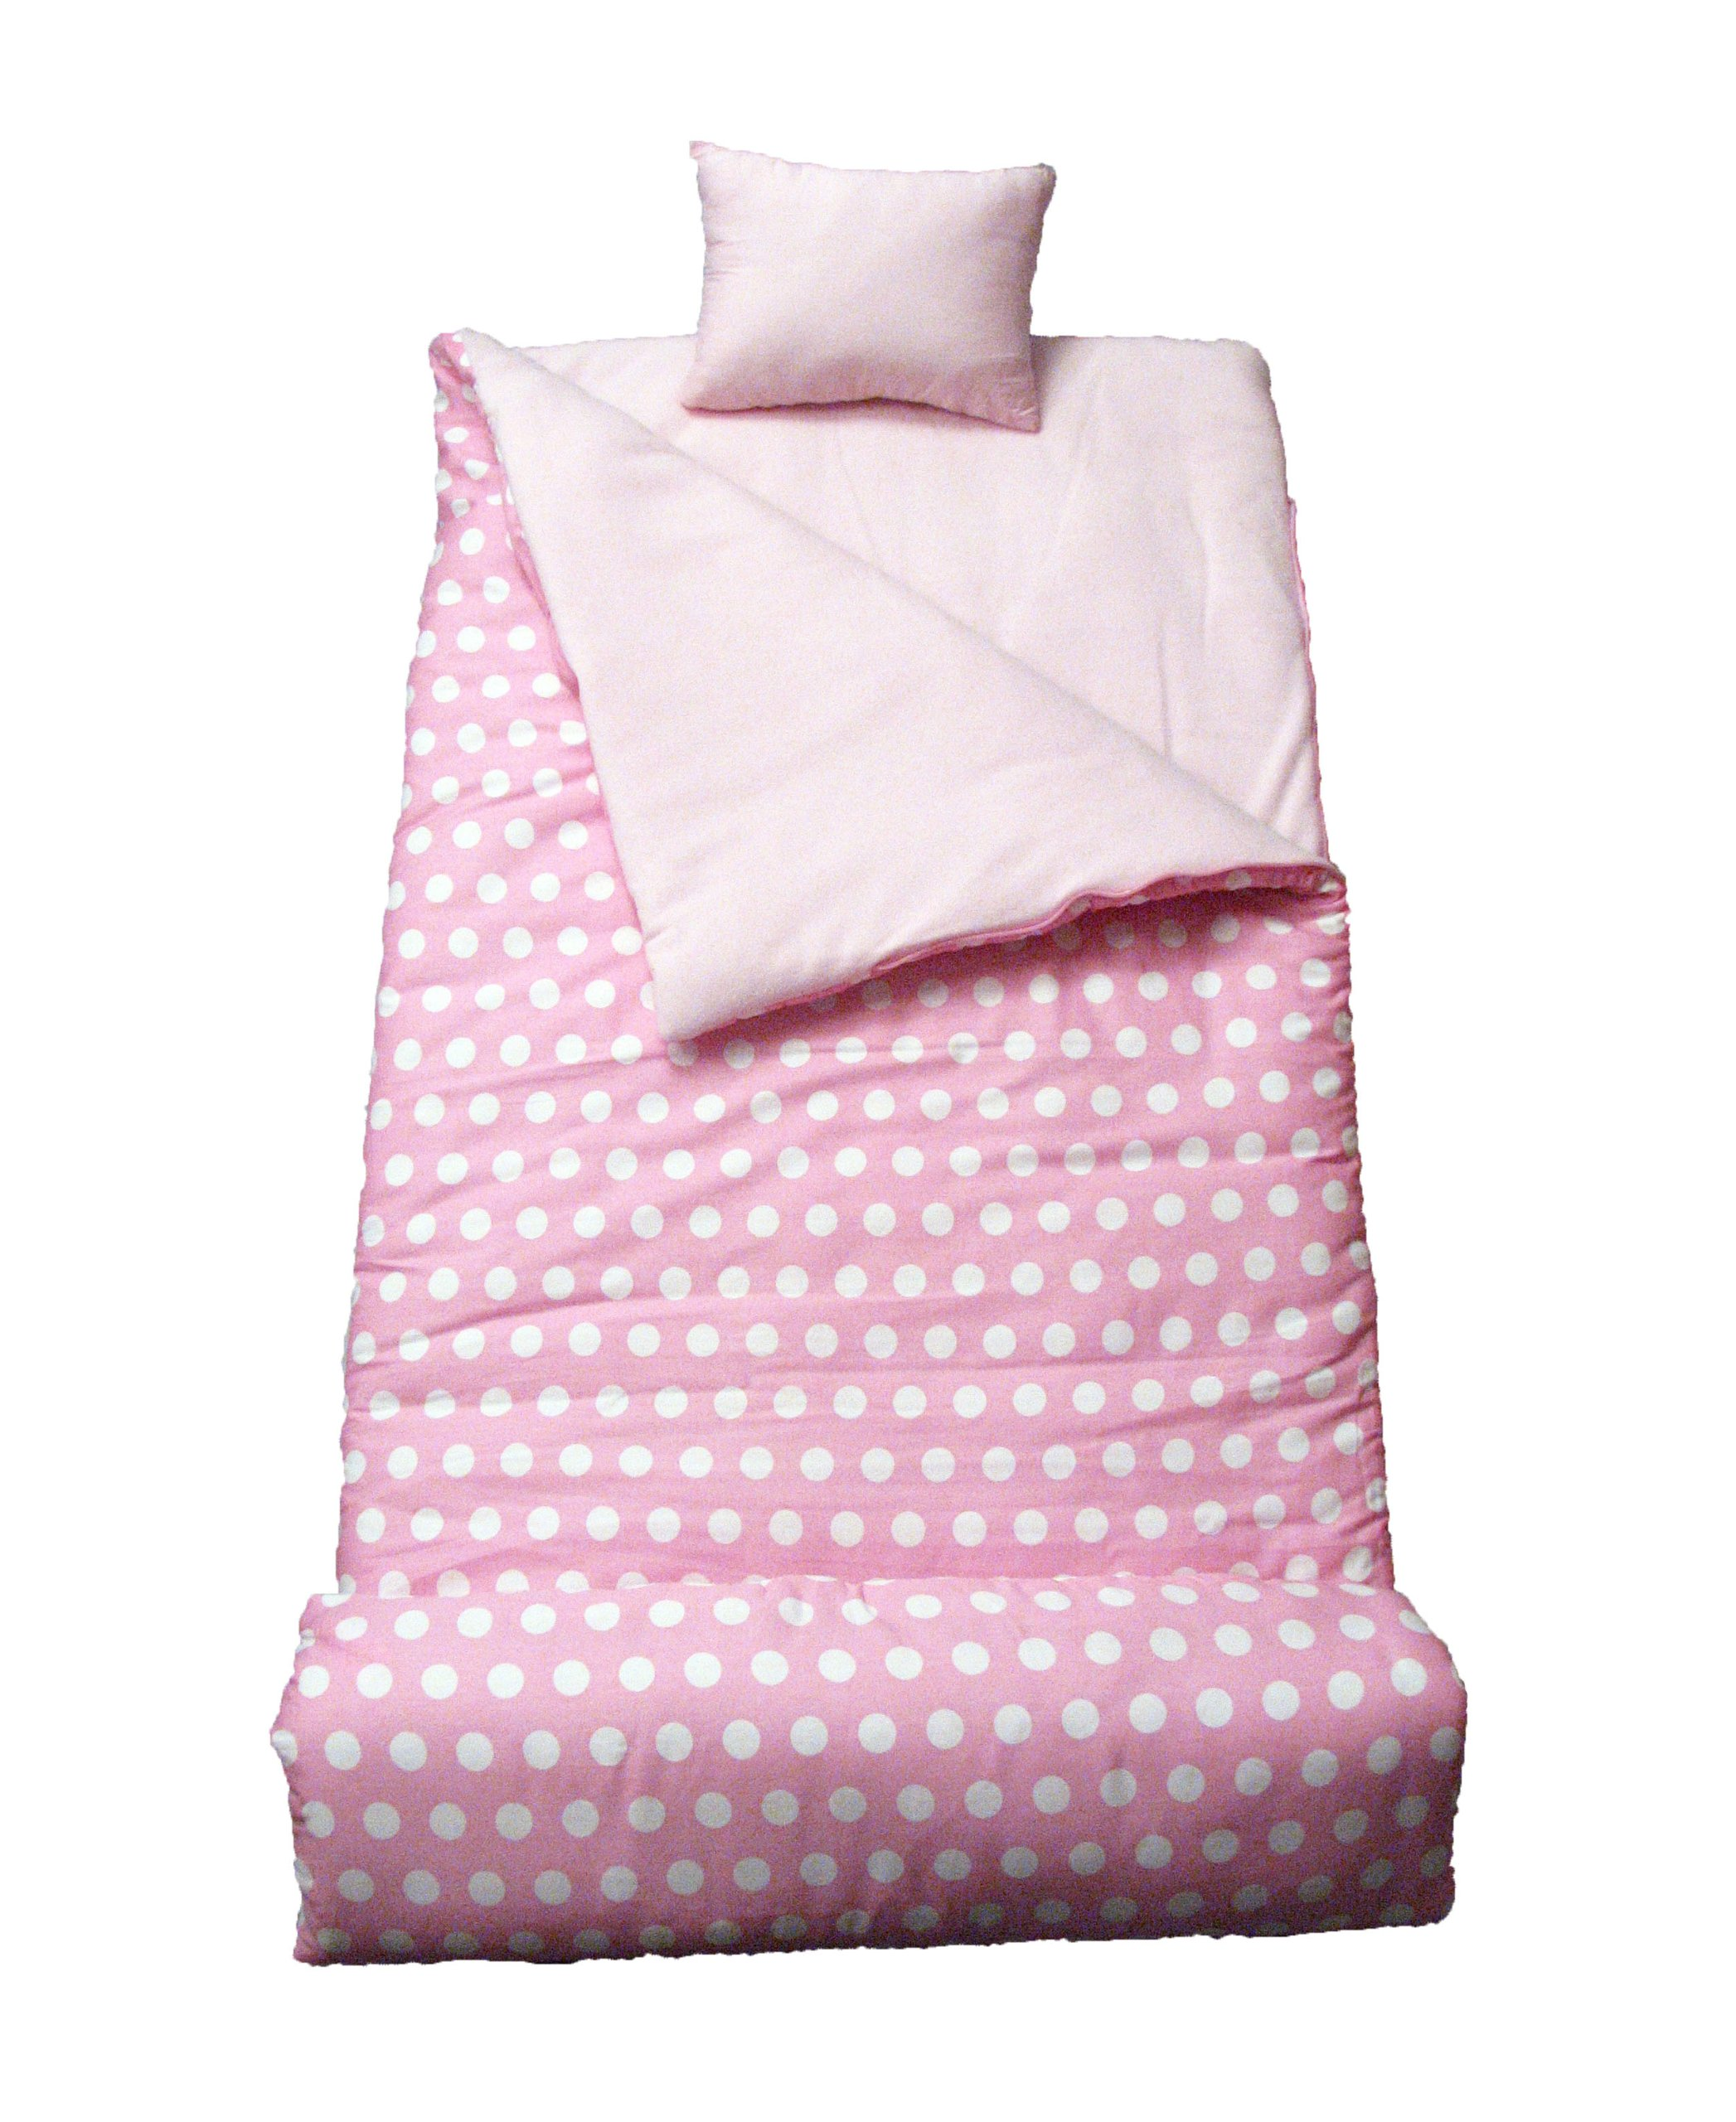 SoHo kids Dot Pink White children sleeping slumber bag with pillow and carrying case lightweight foldable for sleep over